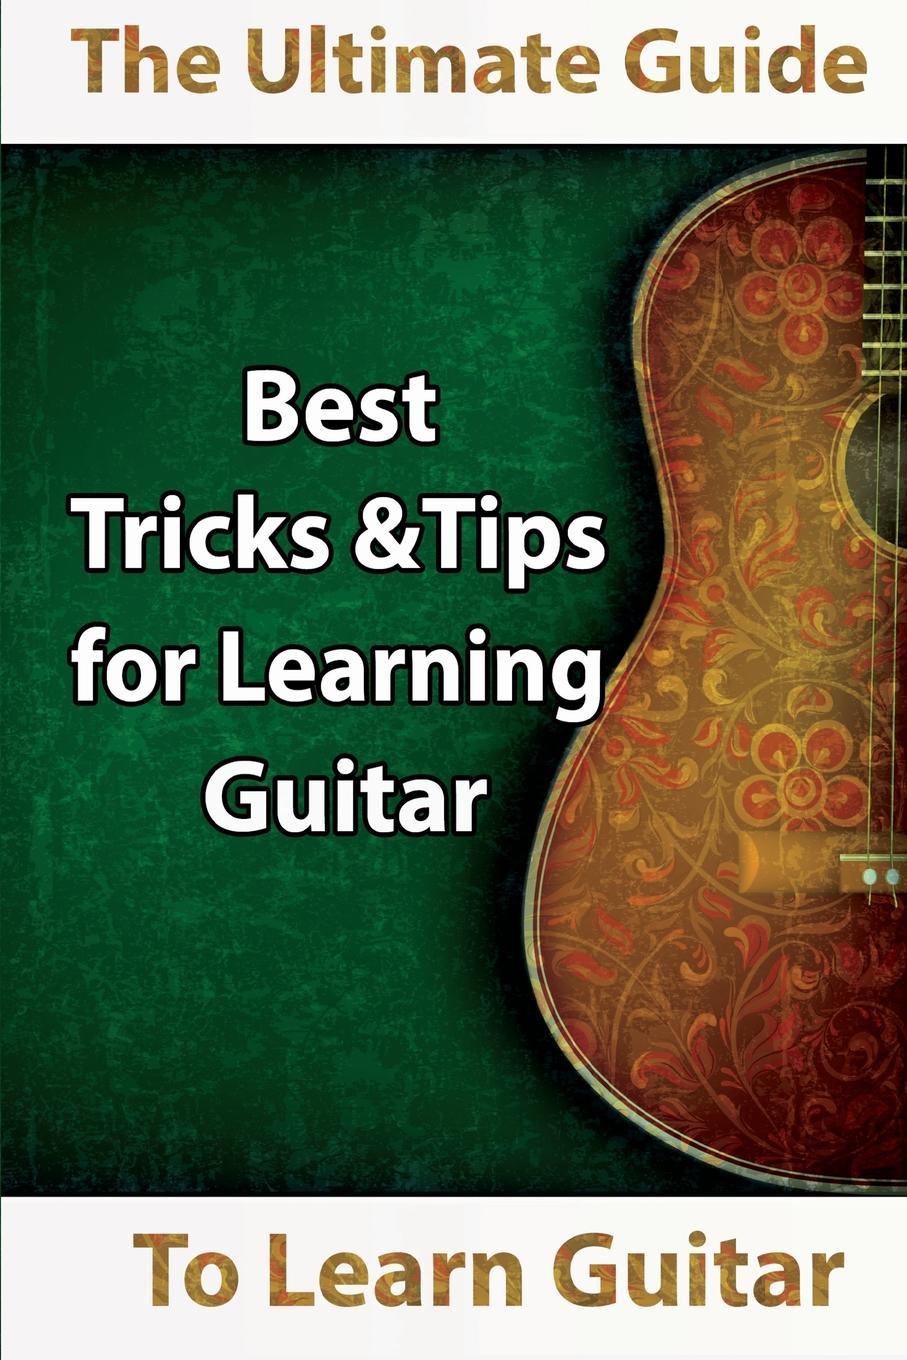 Mavis Kerr Learn Guitar. The Ultimate Guide to Learn Guitar: Best Tips and Tricks for Learning Guitar guitar accessories natural maple guitar body electric guitar body